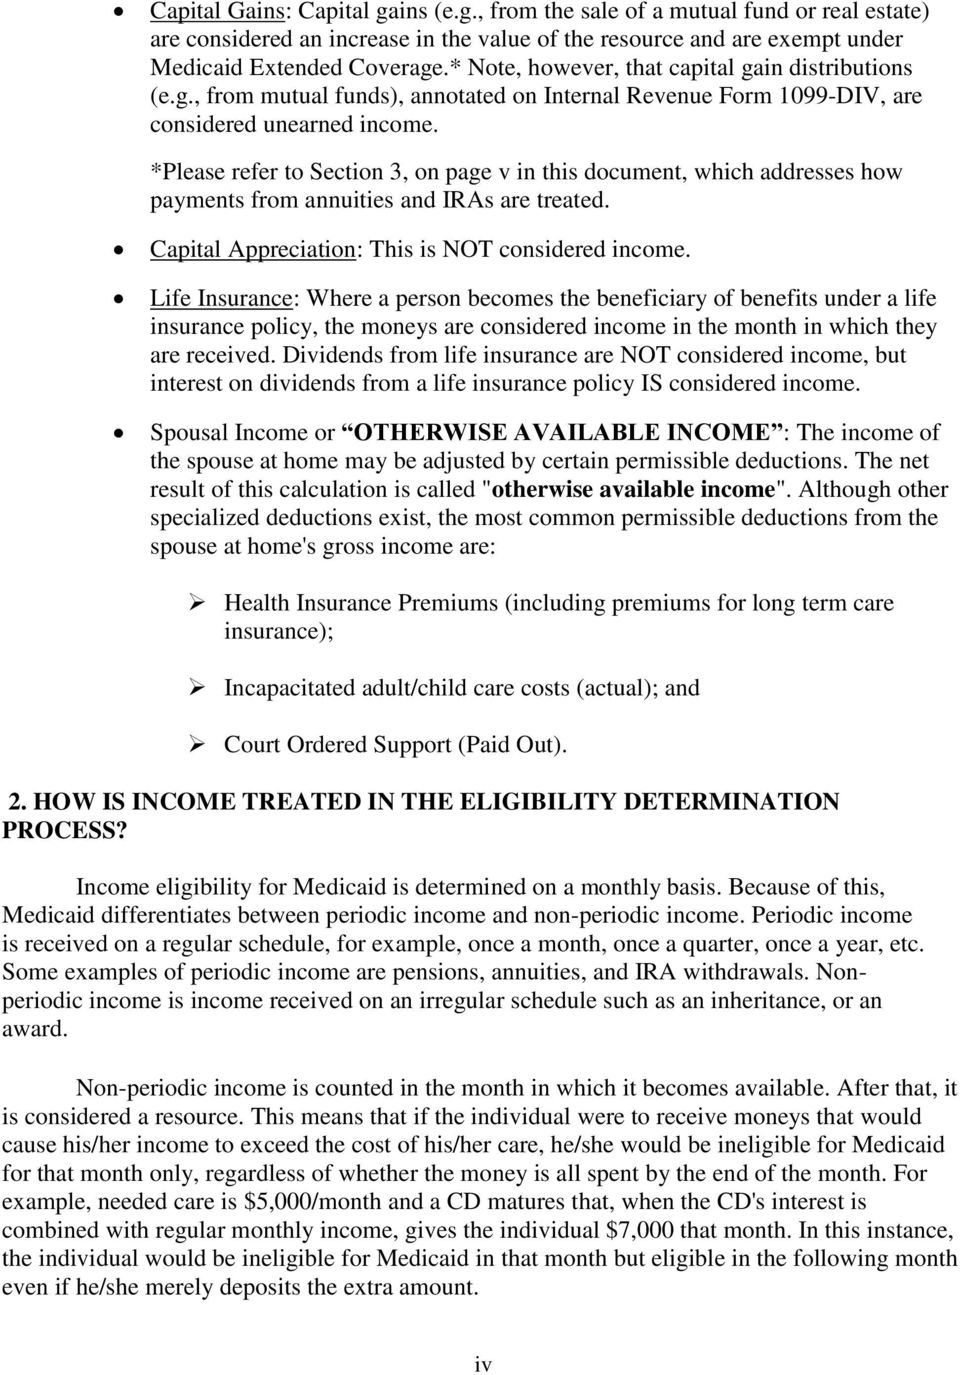 *Please refer to Section 3, on page v in this document, which addresses how payments from annuities and IRAs are treated. Capital Appreciation: This is NOT considered income.